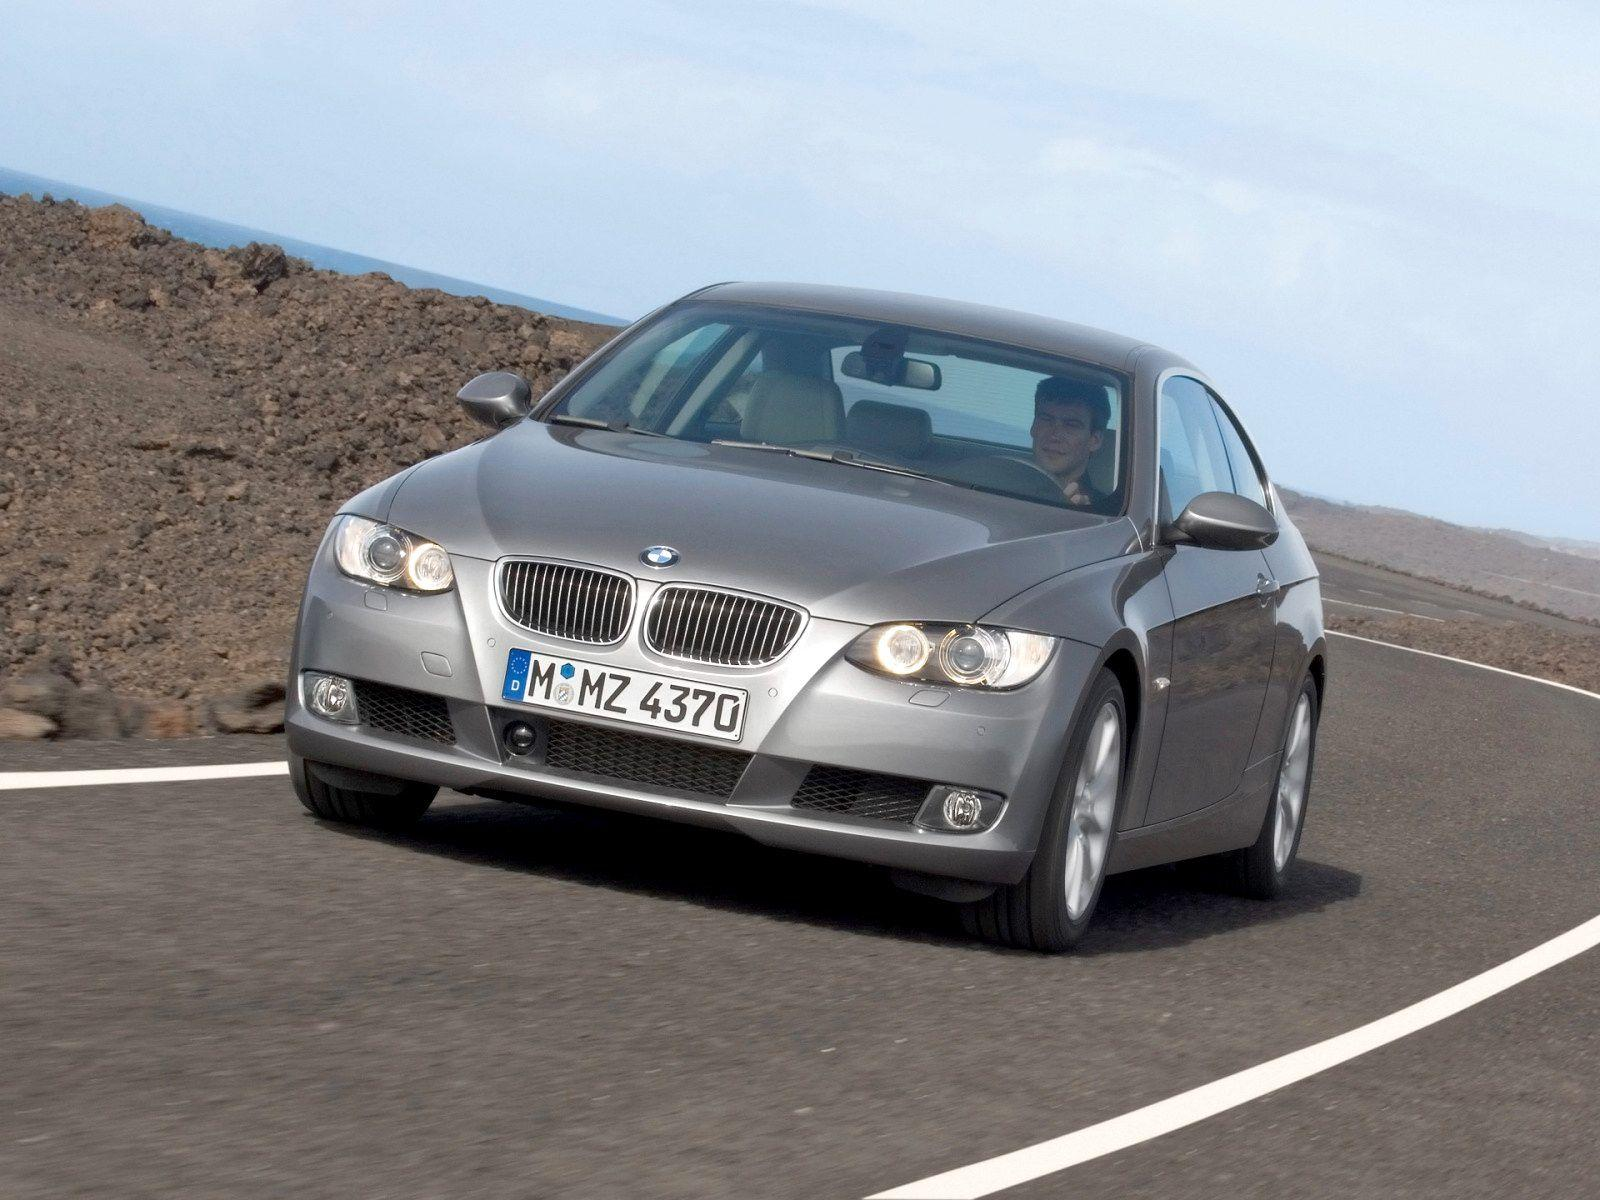 2007 BMW 335i Coupe Wallpaper 05 - 1600x1200